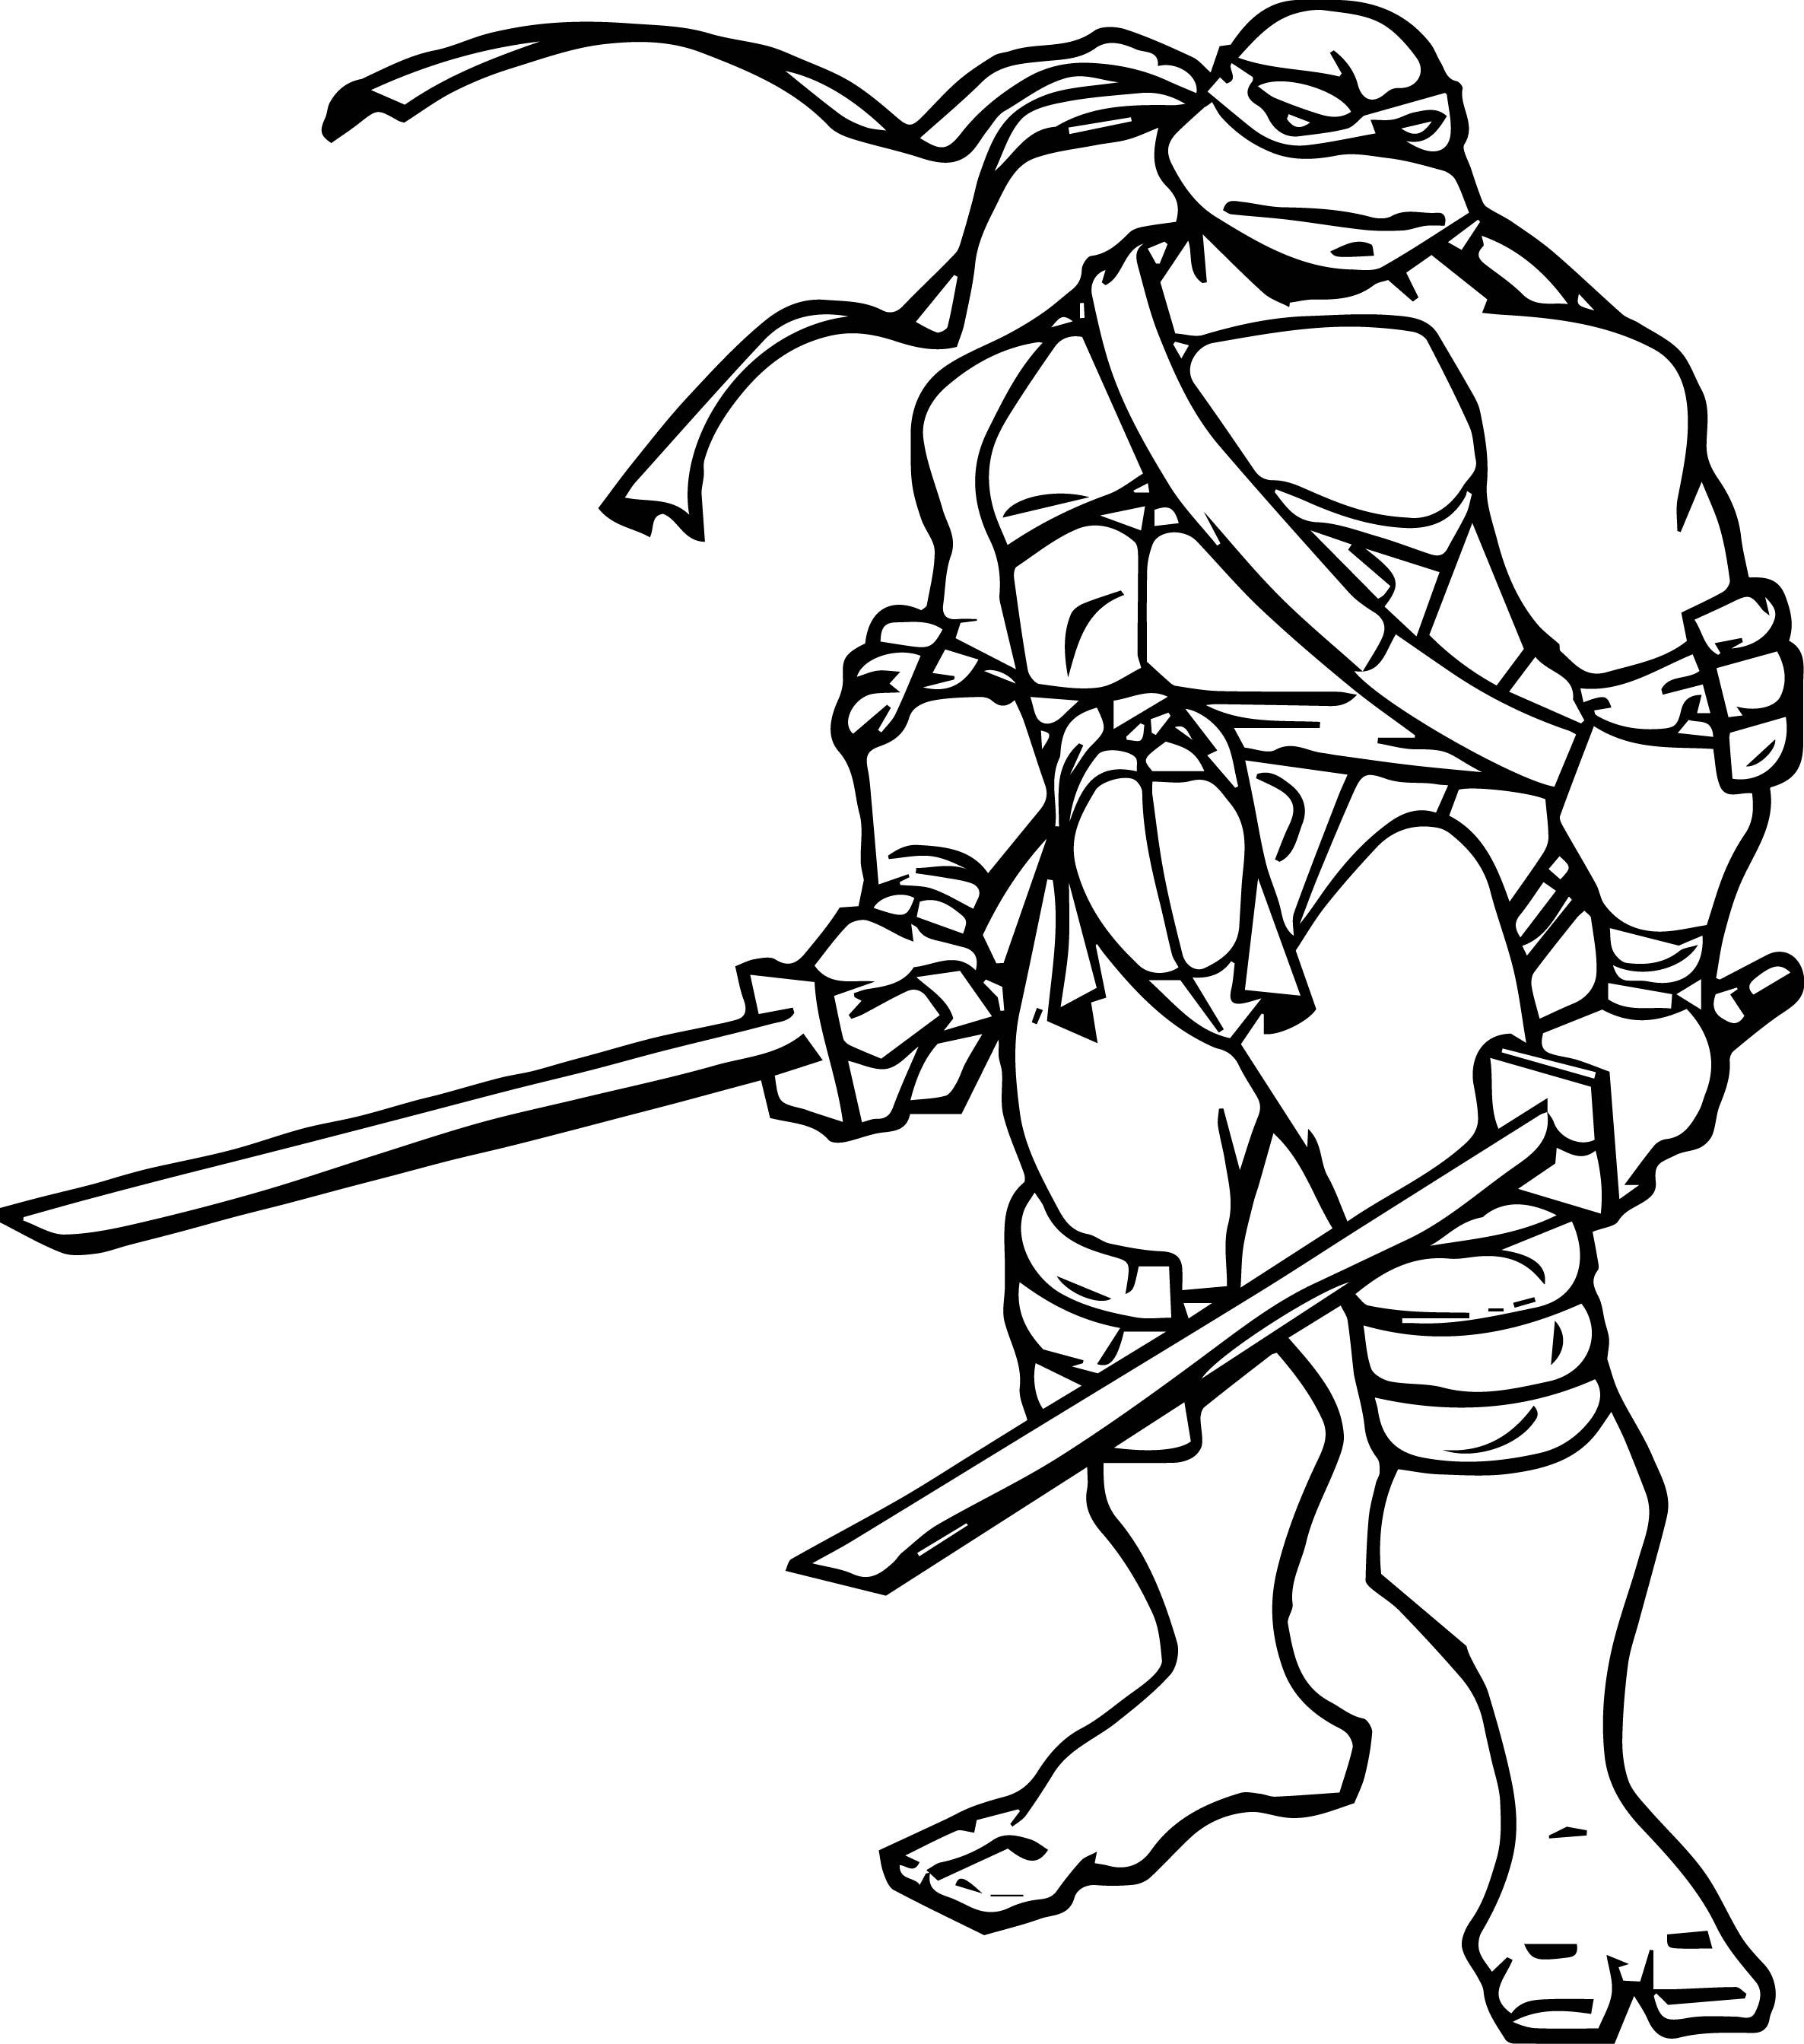 Ninja Turtle Two Blade Coloring Page Wecoloringpage Turtle Coloring Pages Ninja Turtle Coloring Pages Leonardo Ninja Turtle